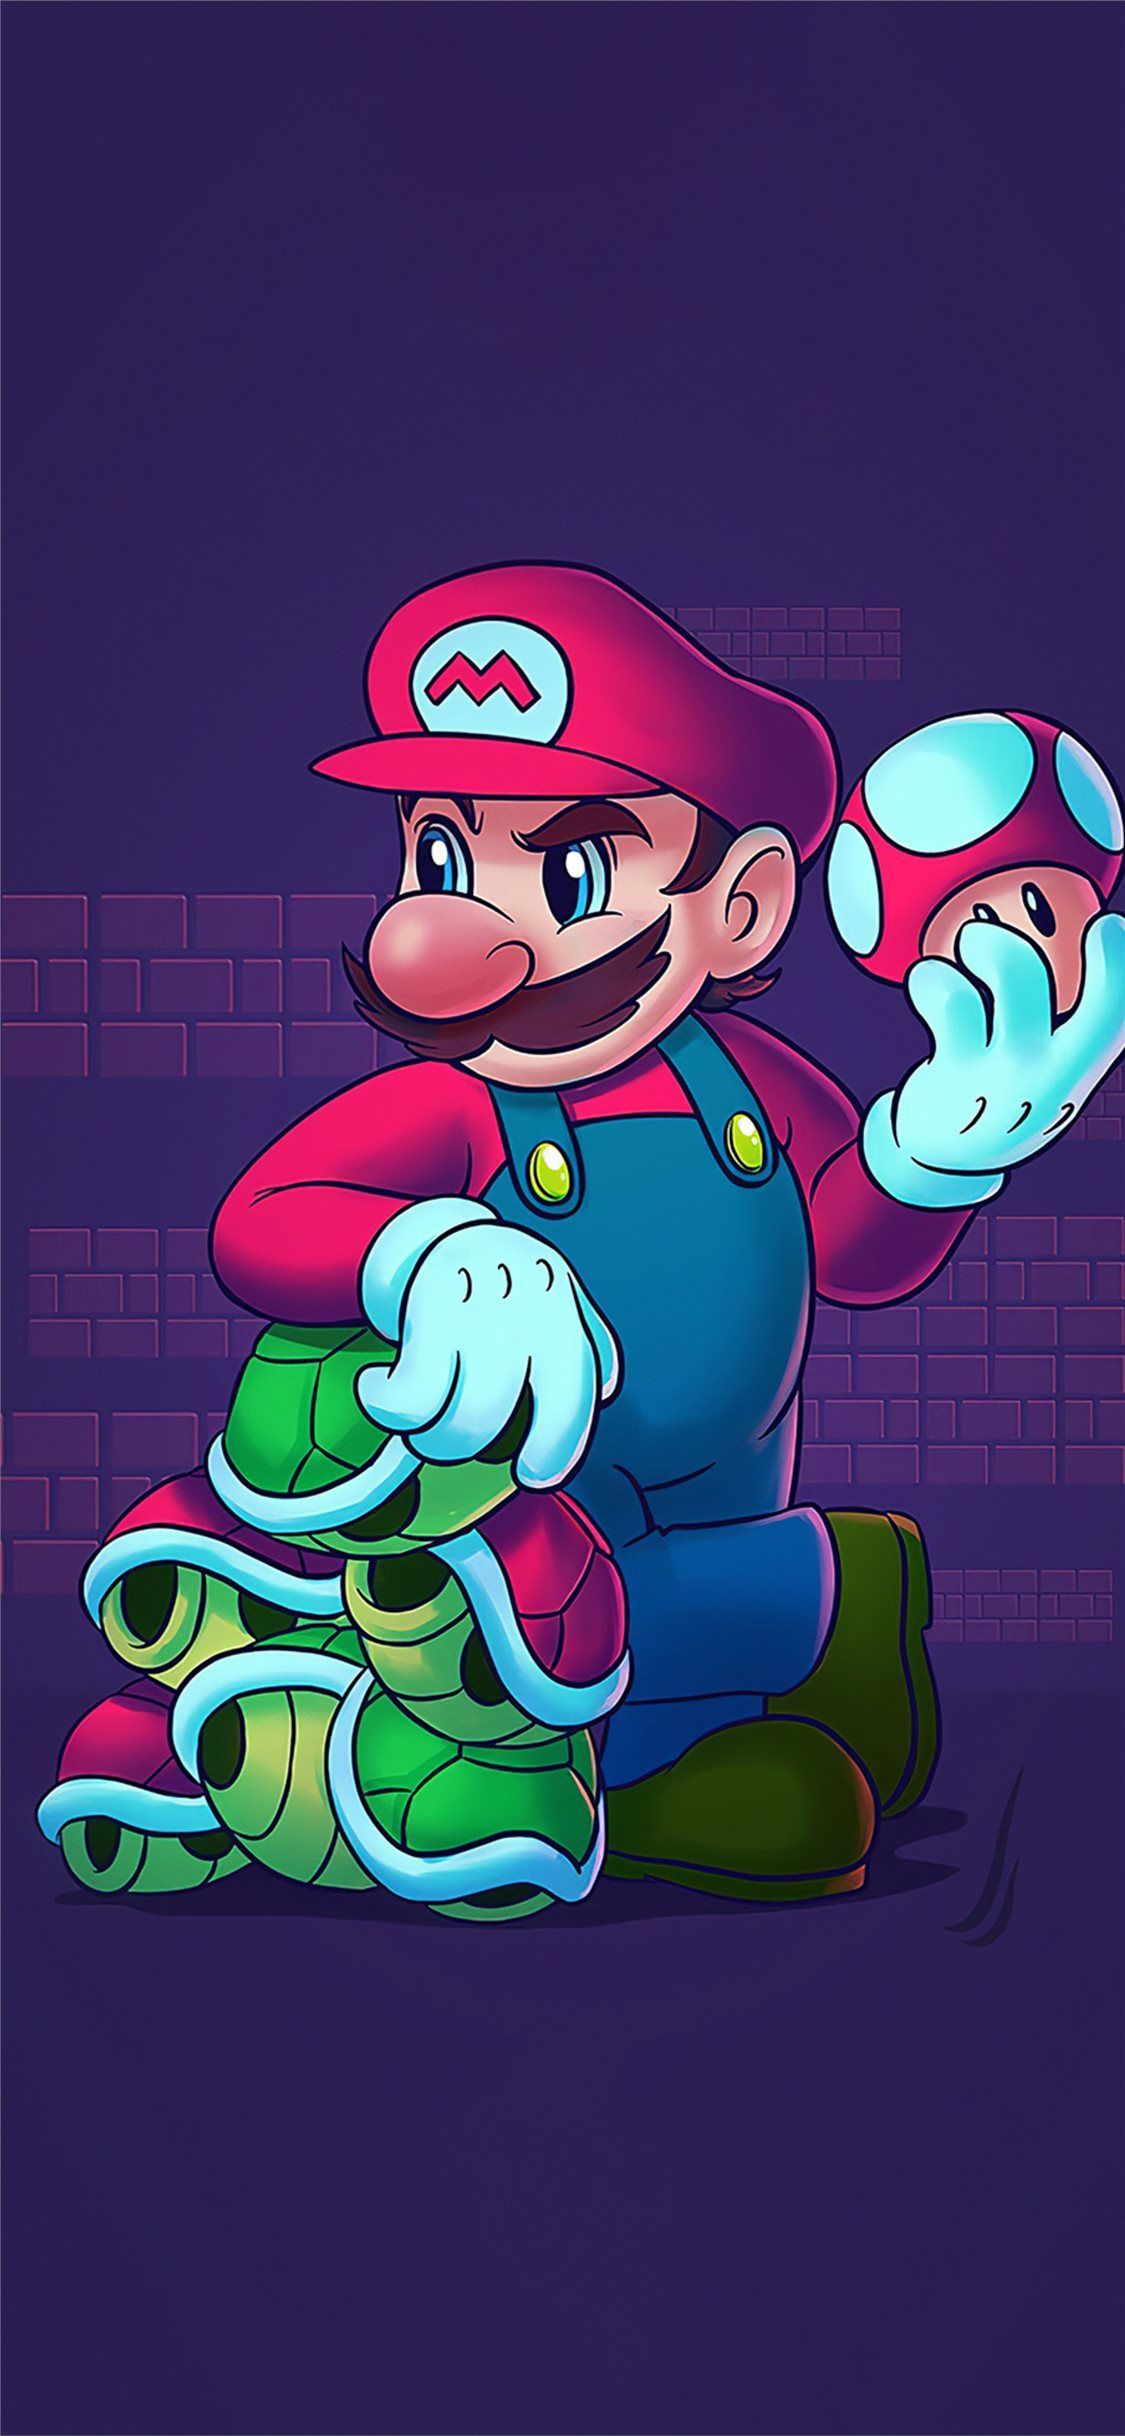 Free Download The Super Mario Nintendo 4k Wallpaper Beaty Your Iphone Super Mario Mario Games 4k Wallpaper Bac Cartoon Wallpaper Mario Art Super Mario